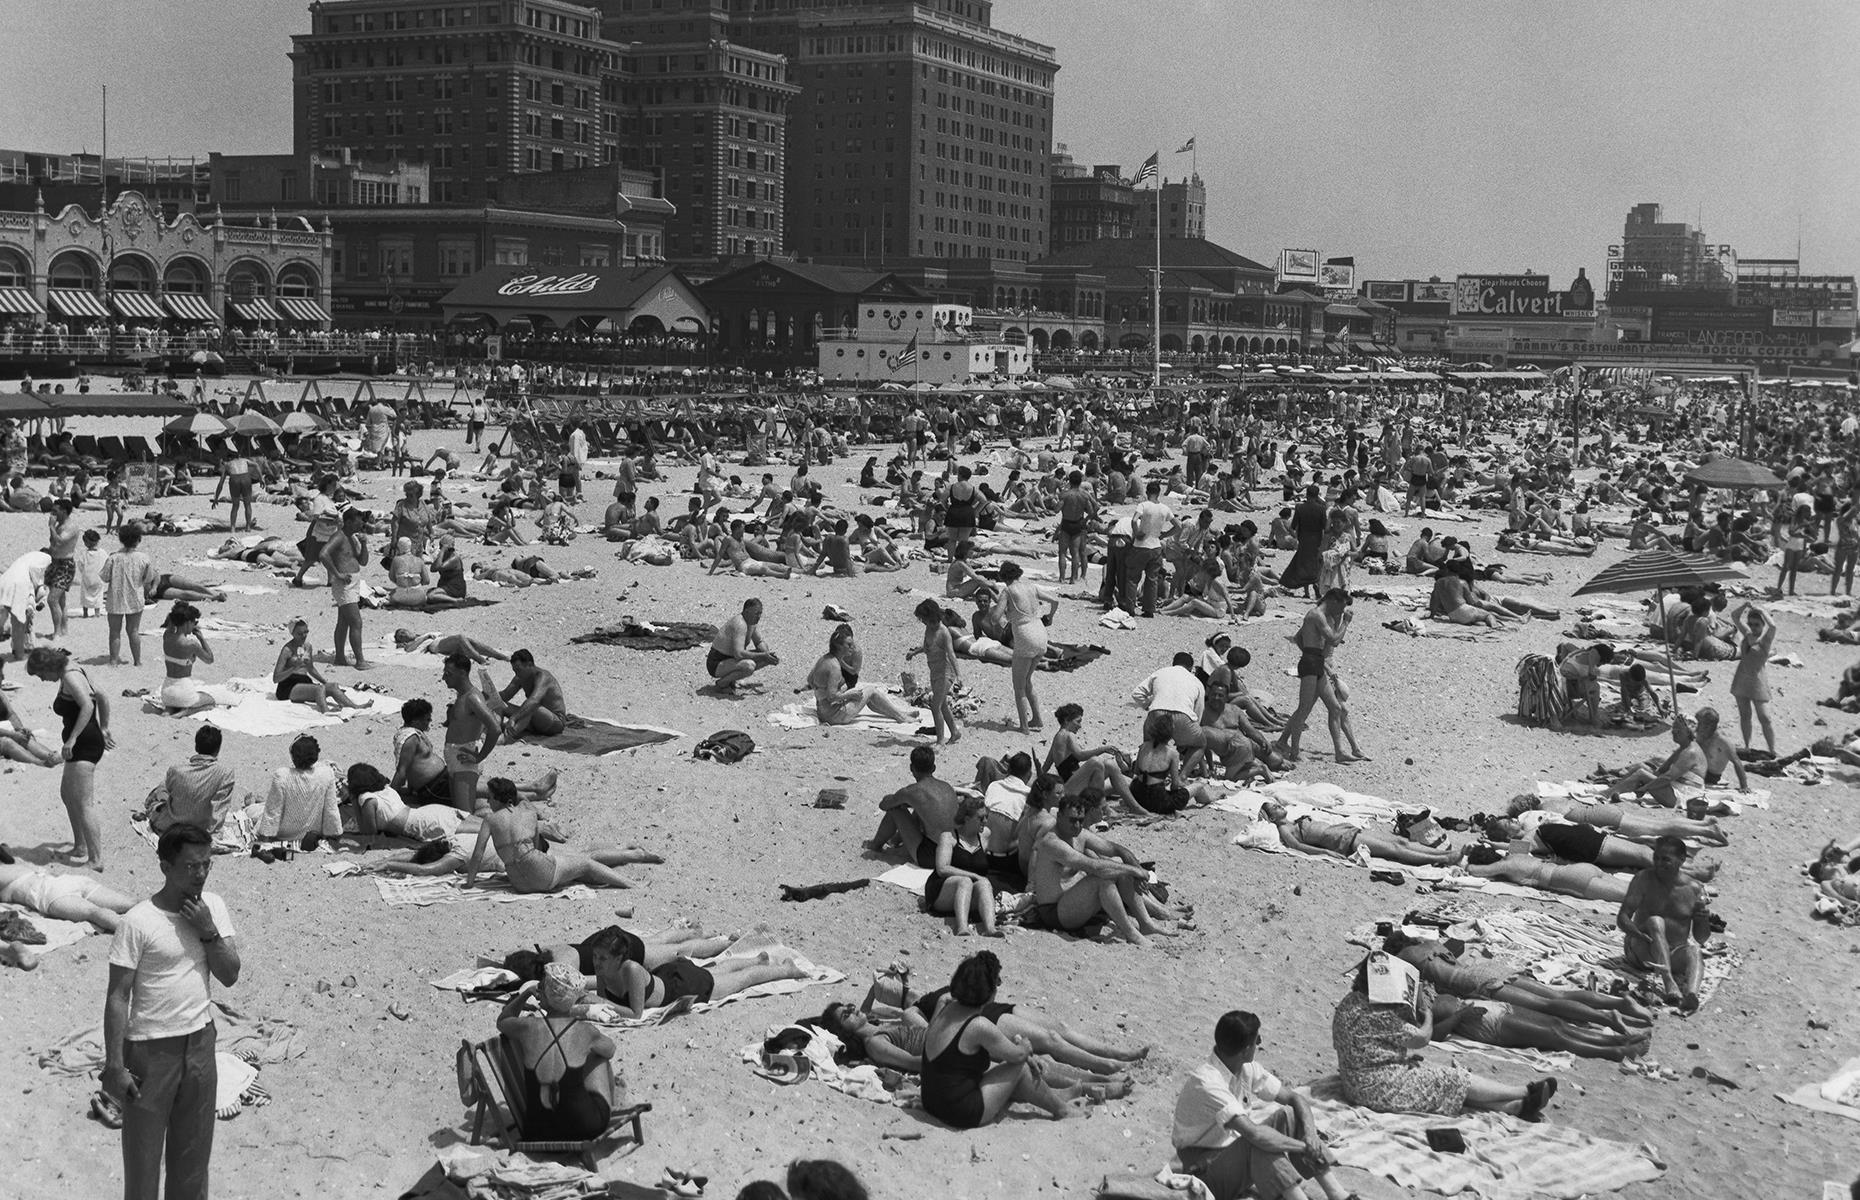 Slide 3 of 38: In the post-war years, beachside destinations on America's East Coast boomed. Here families, friends and couples relax on Atlantic City's sandy beach, while the hotel-lined boardwalk thrums behind them.